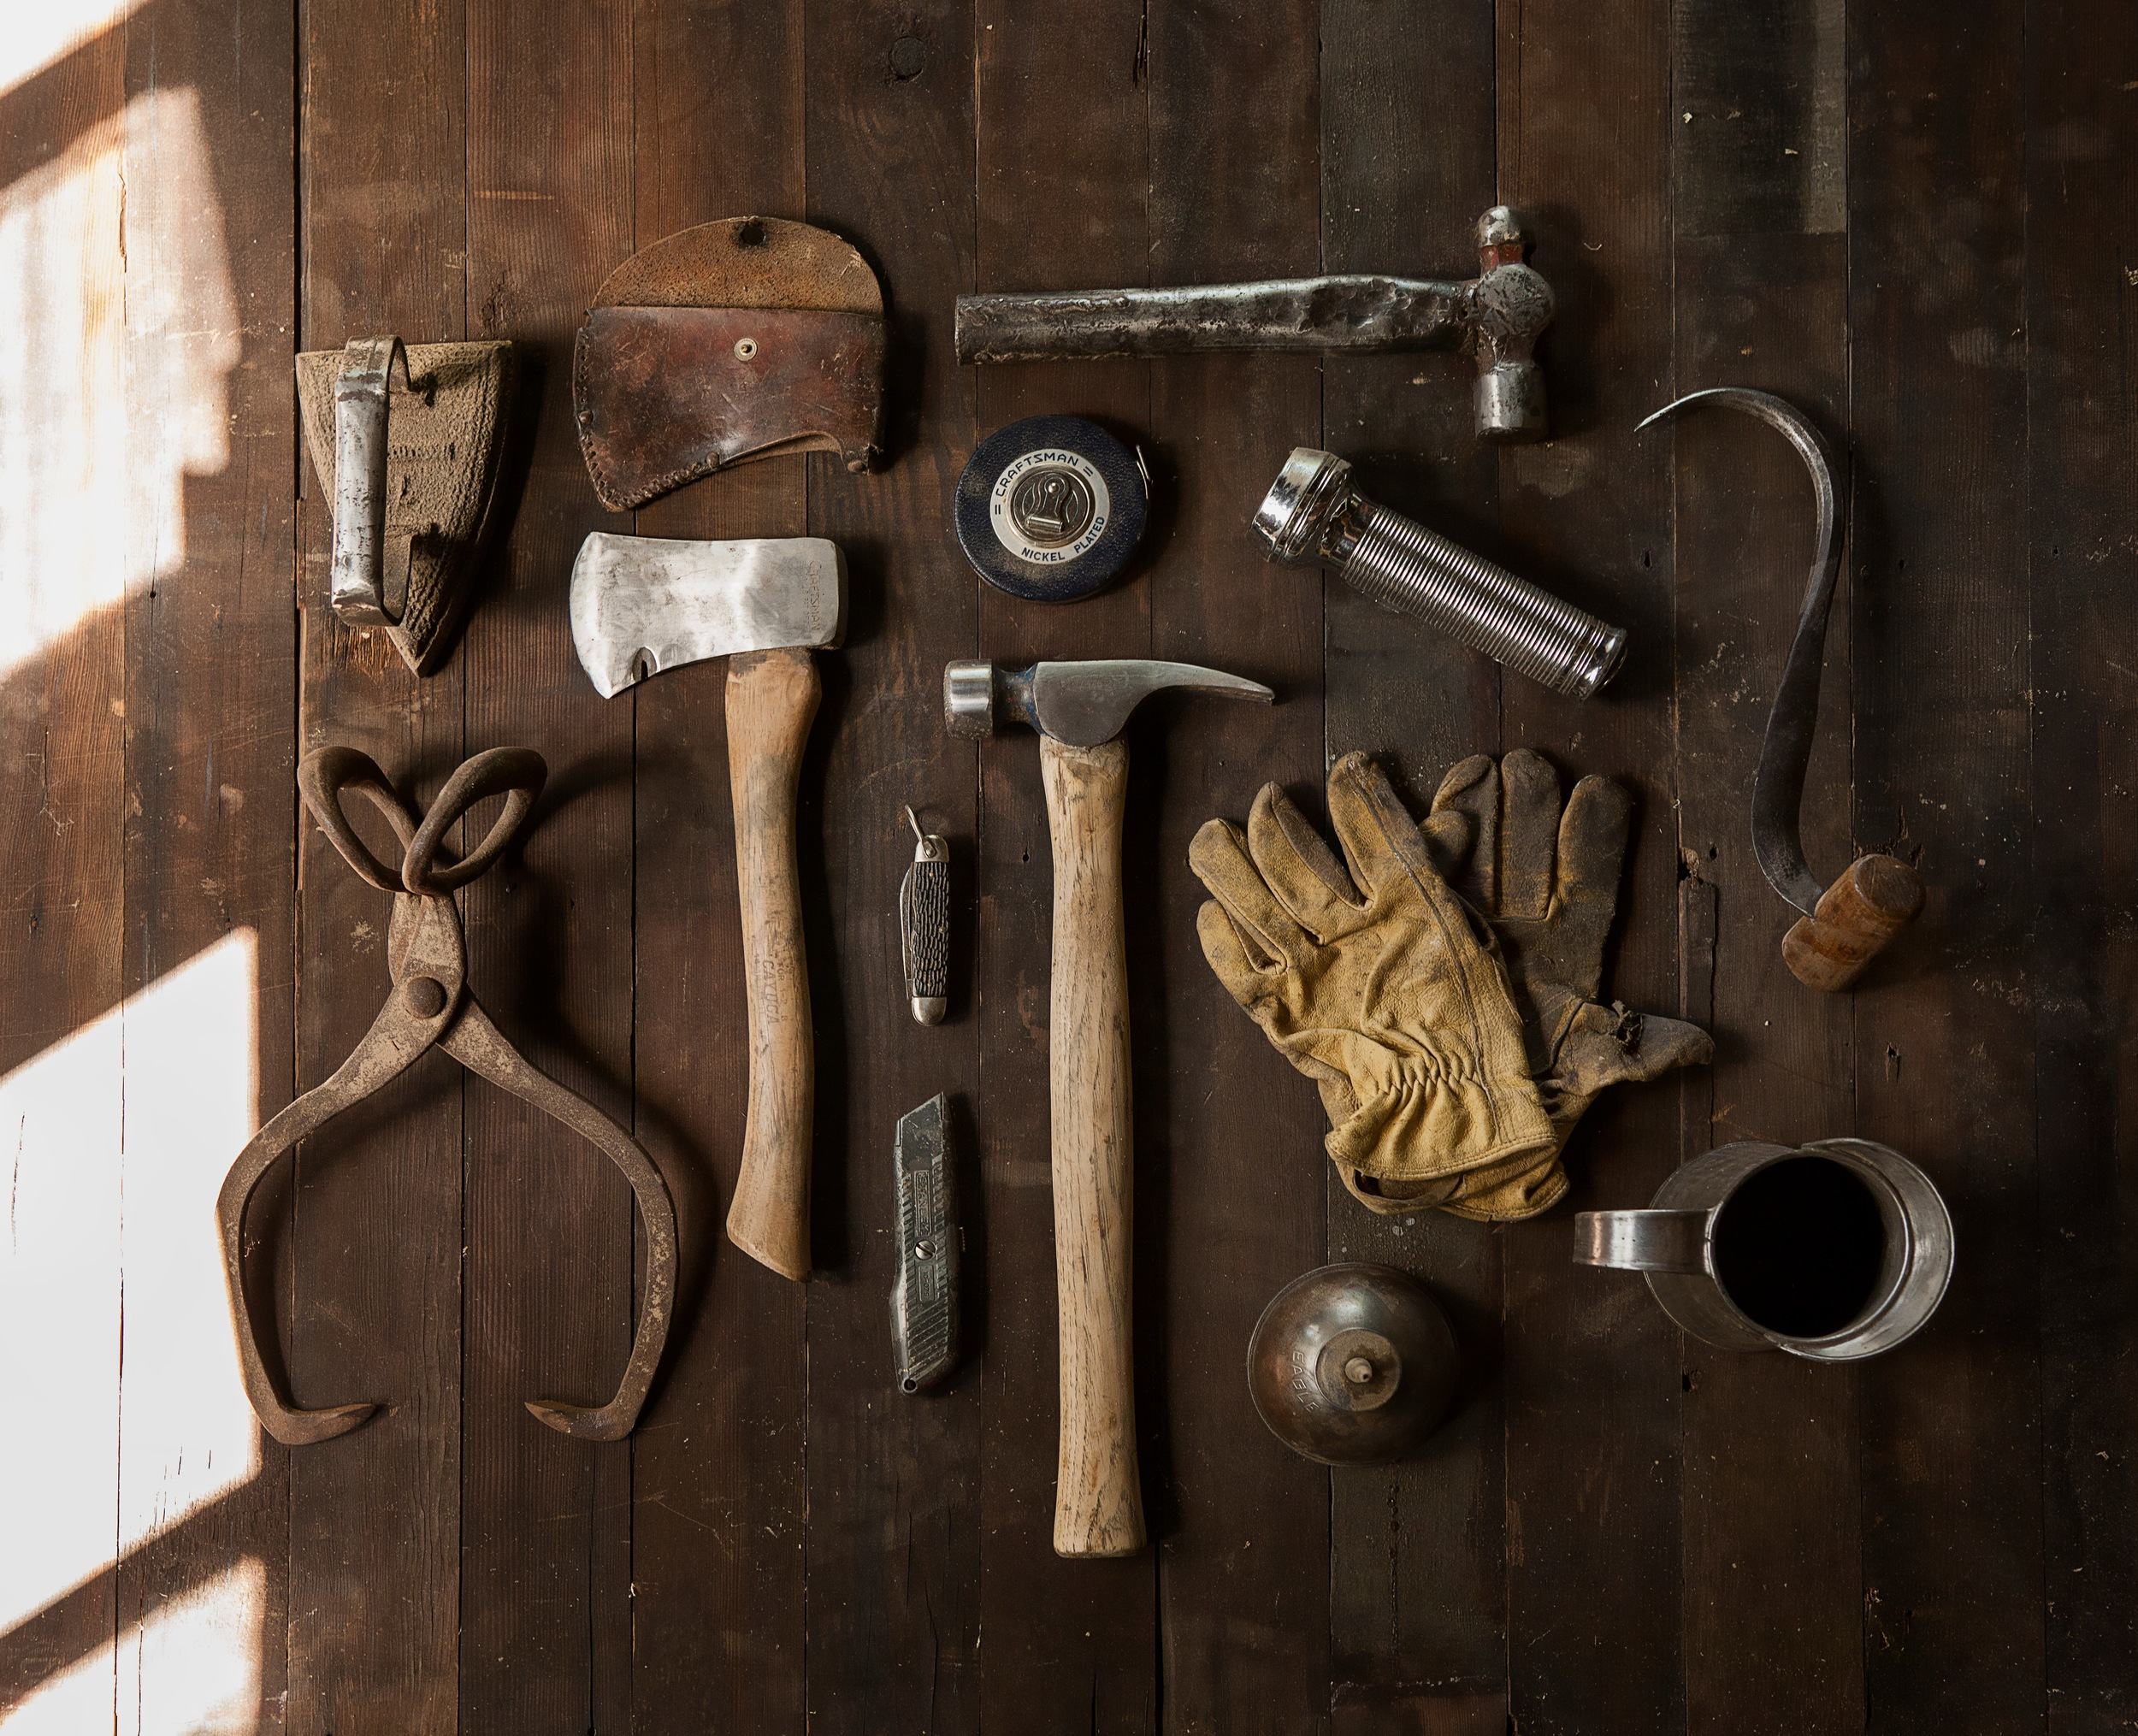 Take that hatchet to my heart, why don't you? Source:  unsplash